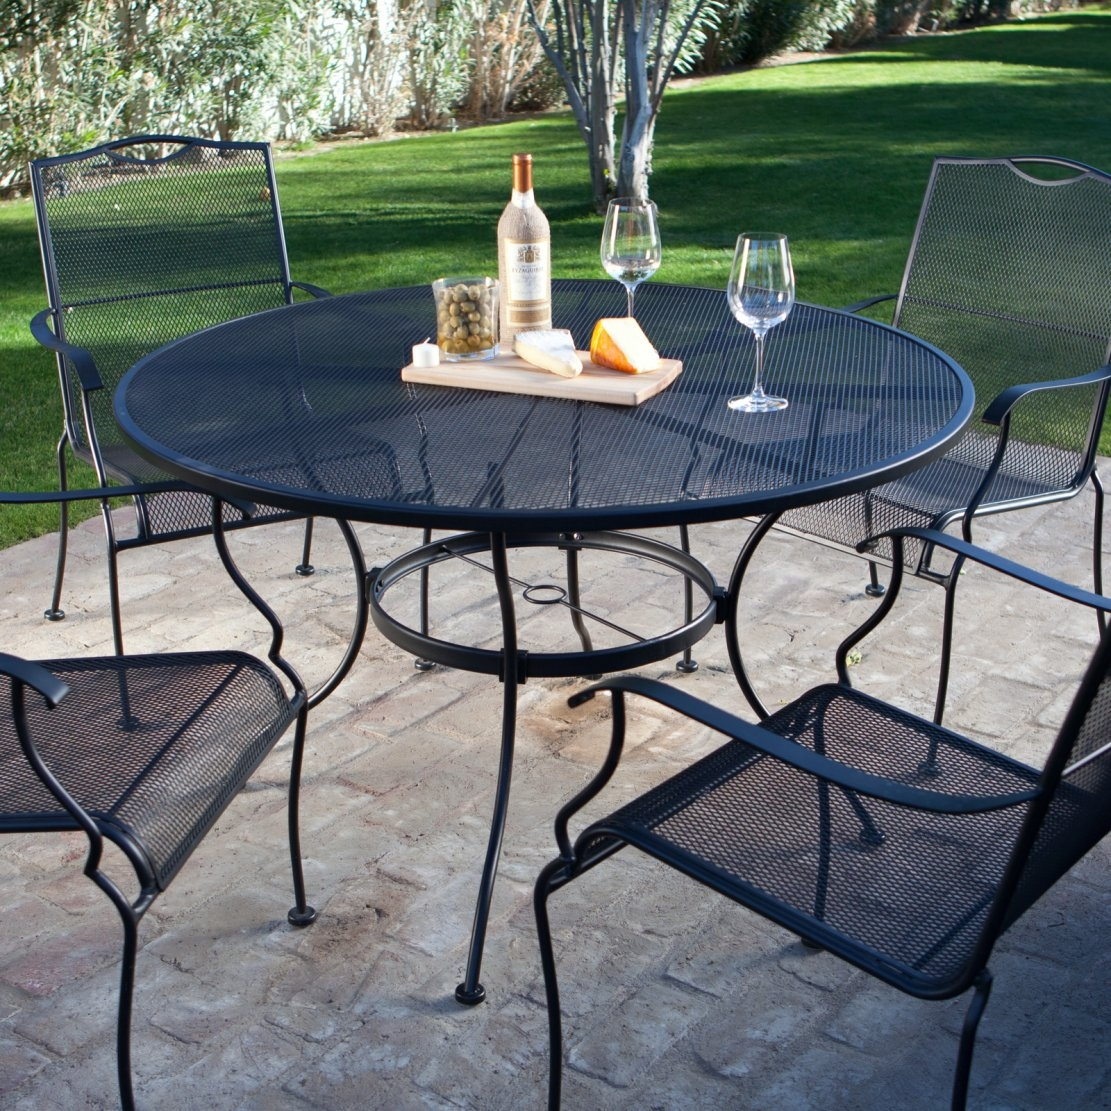 5-piece Wrought Iron Patio Furniture Dining Set - Seats 4